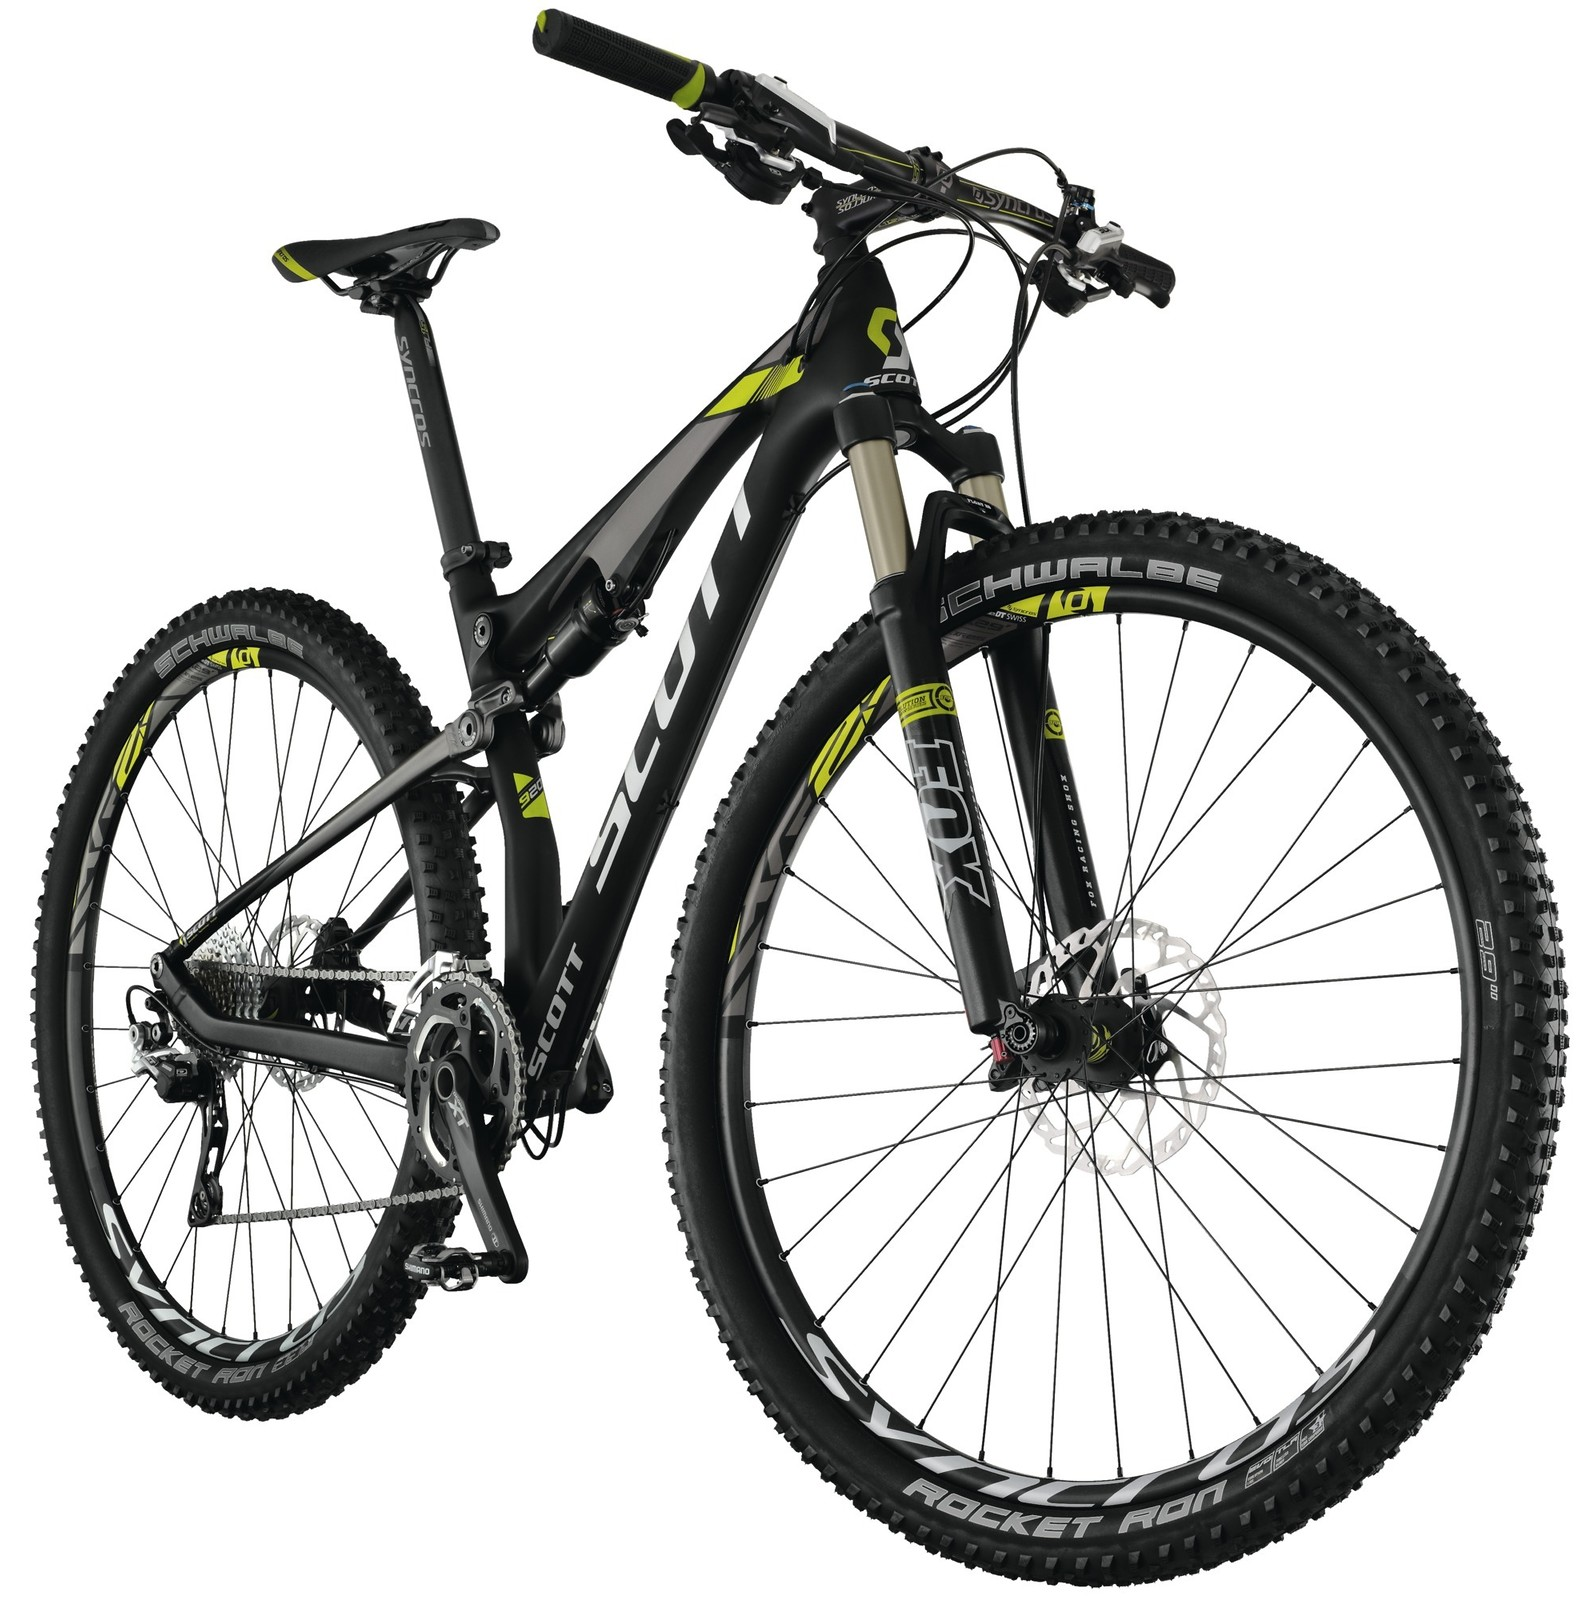 96df5f98147 2013 Scott Spark 920 Bike - Reviews, Comparisons, Specs - Mountain ...